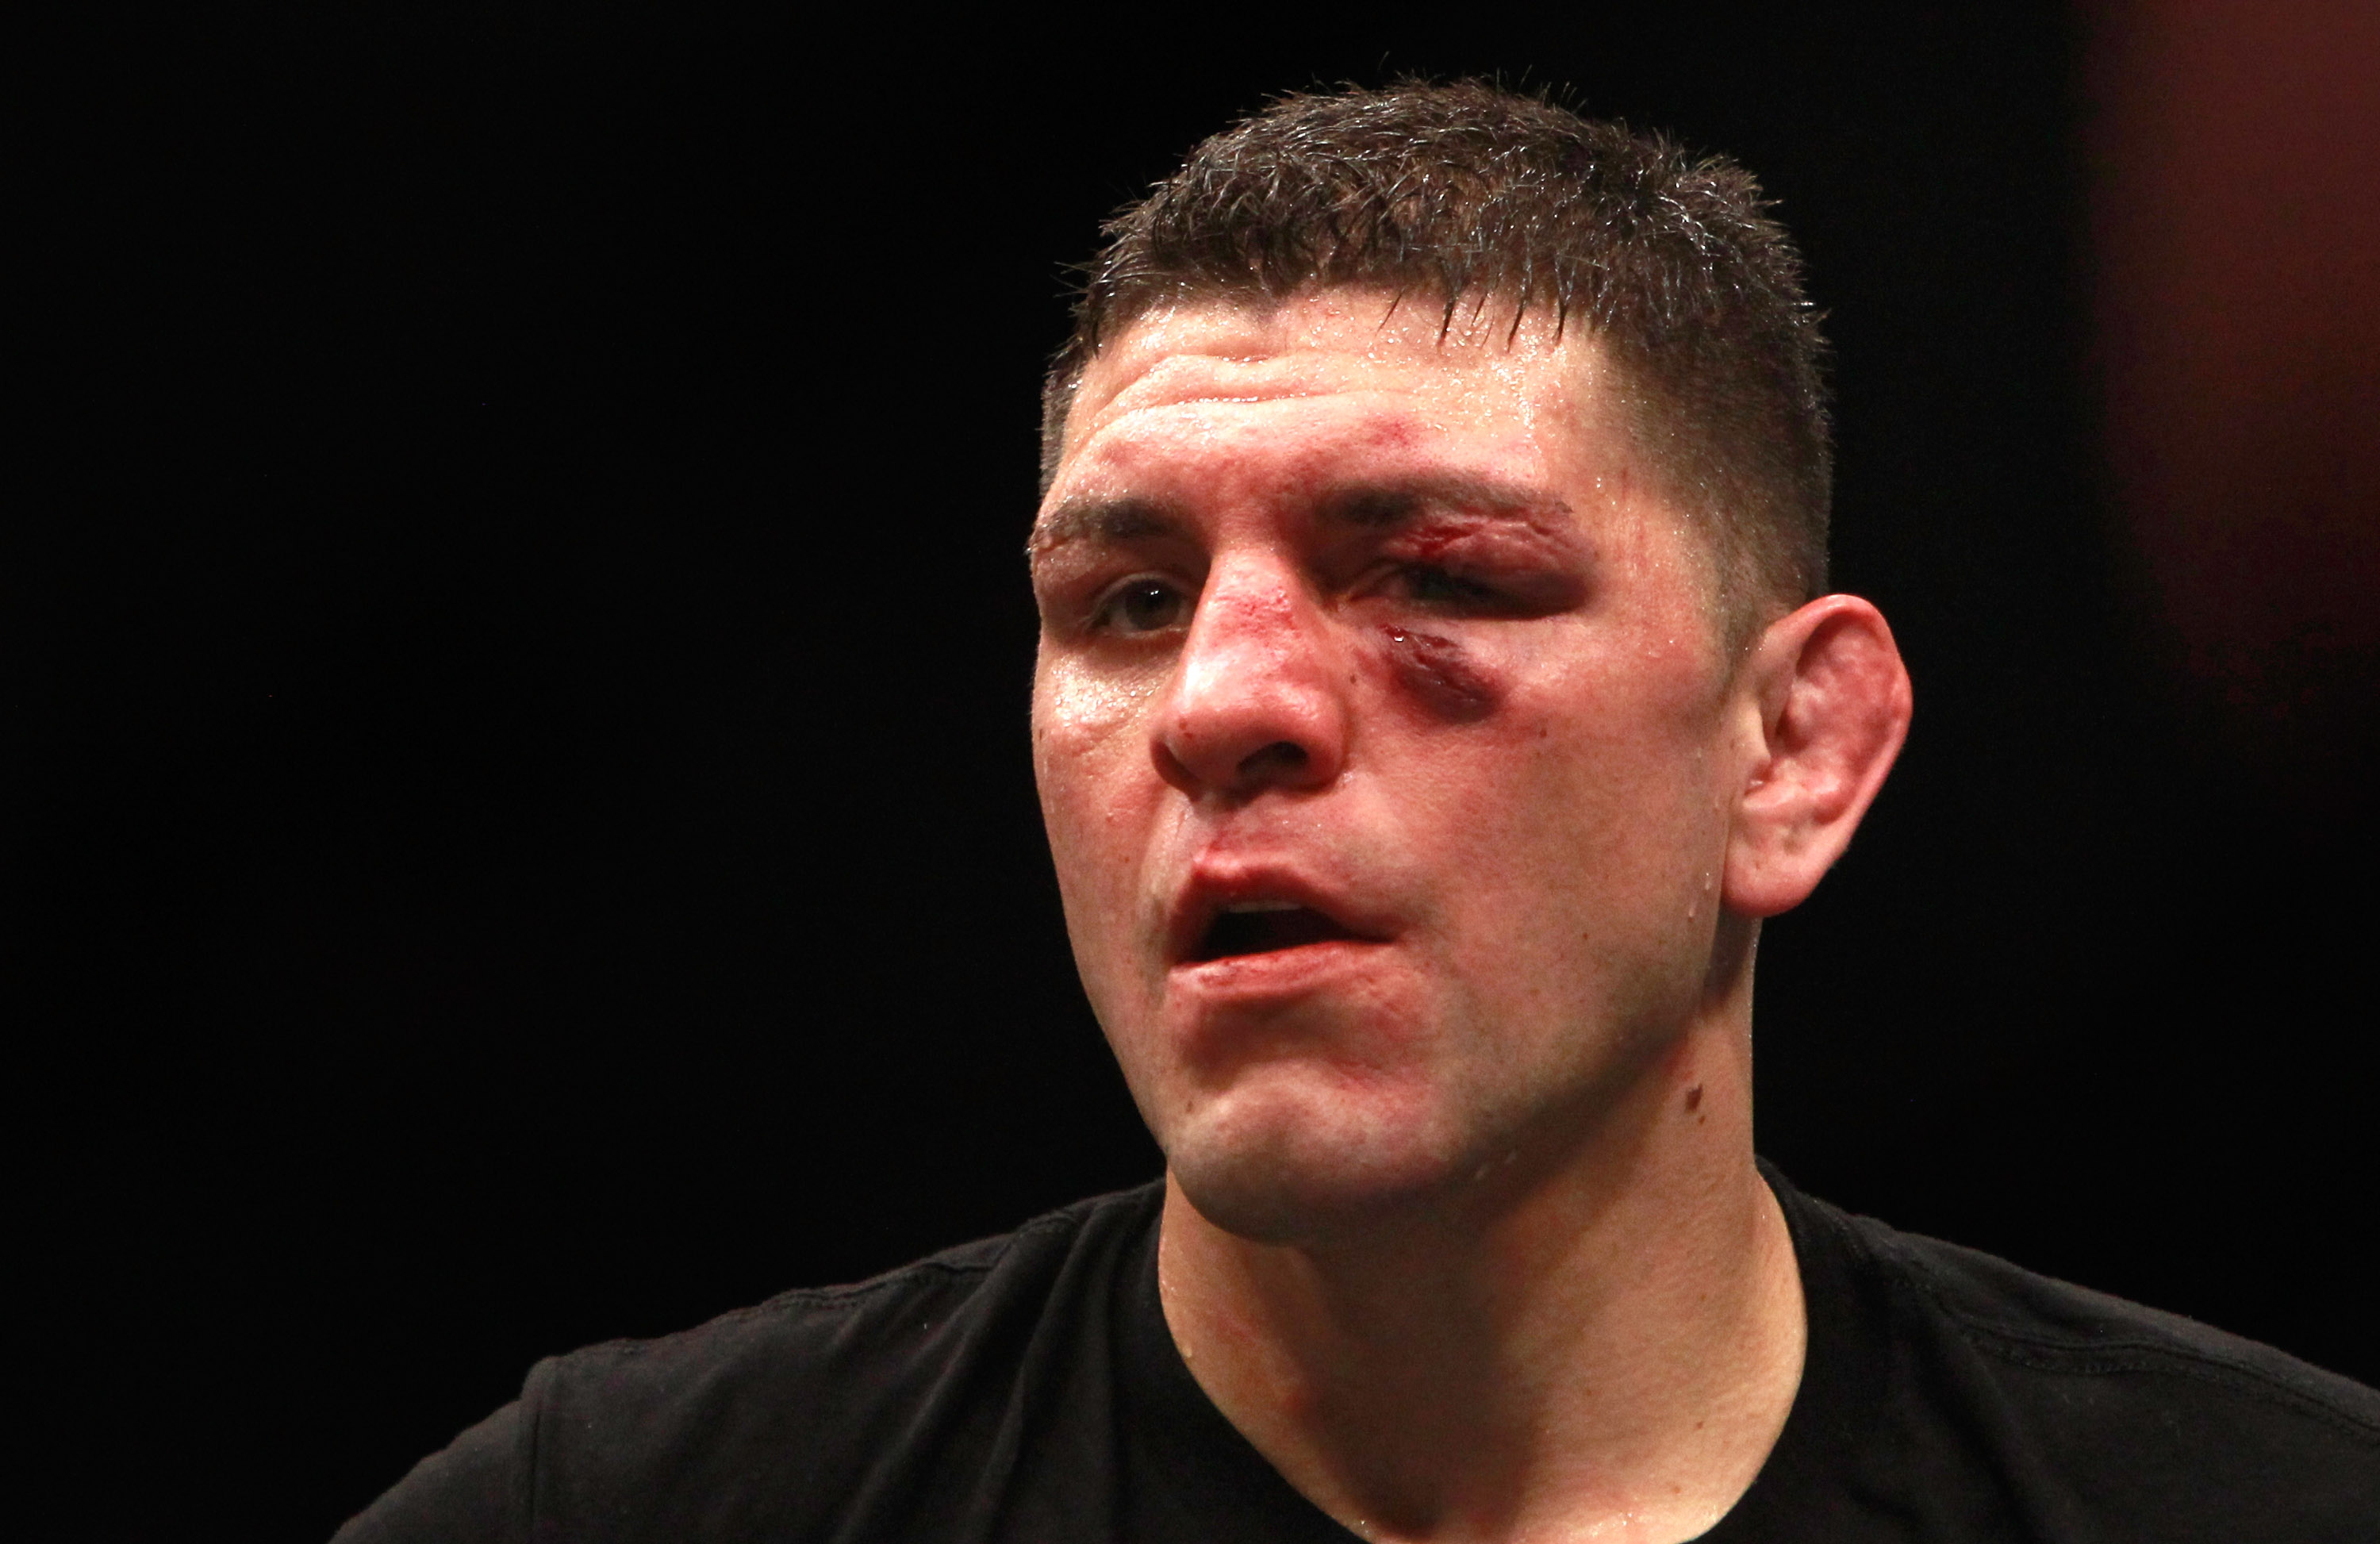 Nick Diaz Reveals What Happened When Three Guys Tried To Attack Him GettyImages 462600456